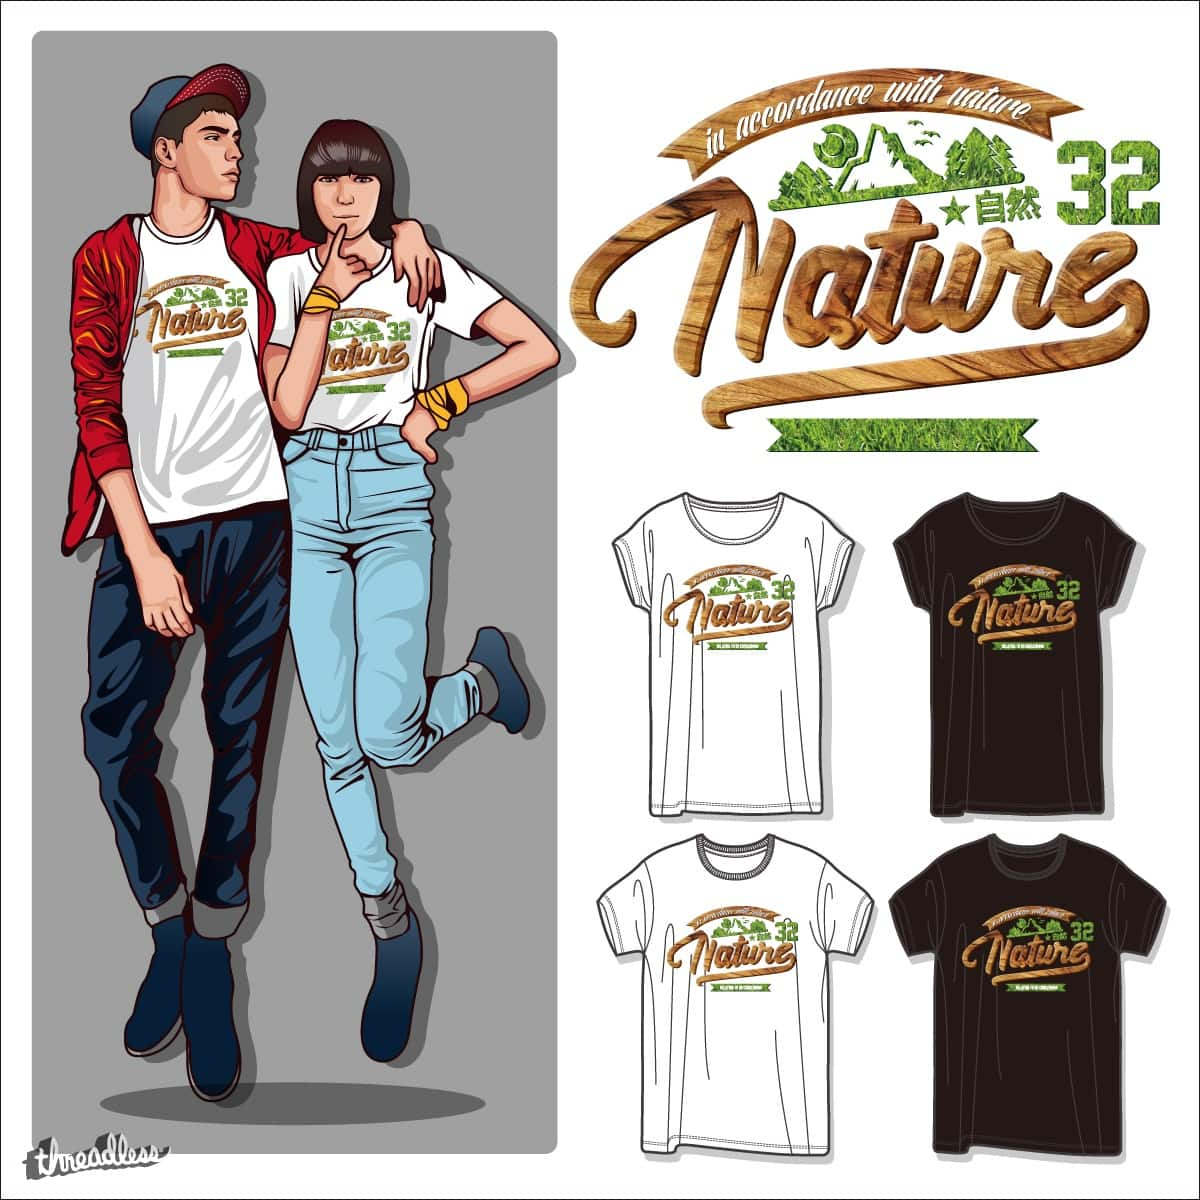 nature by hugotunes on Threadless